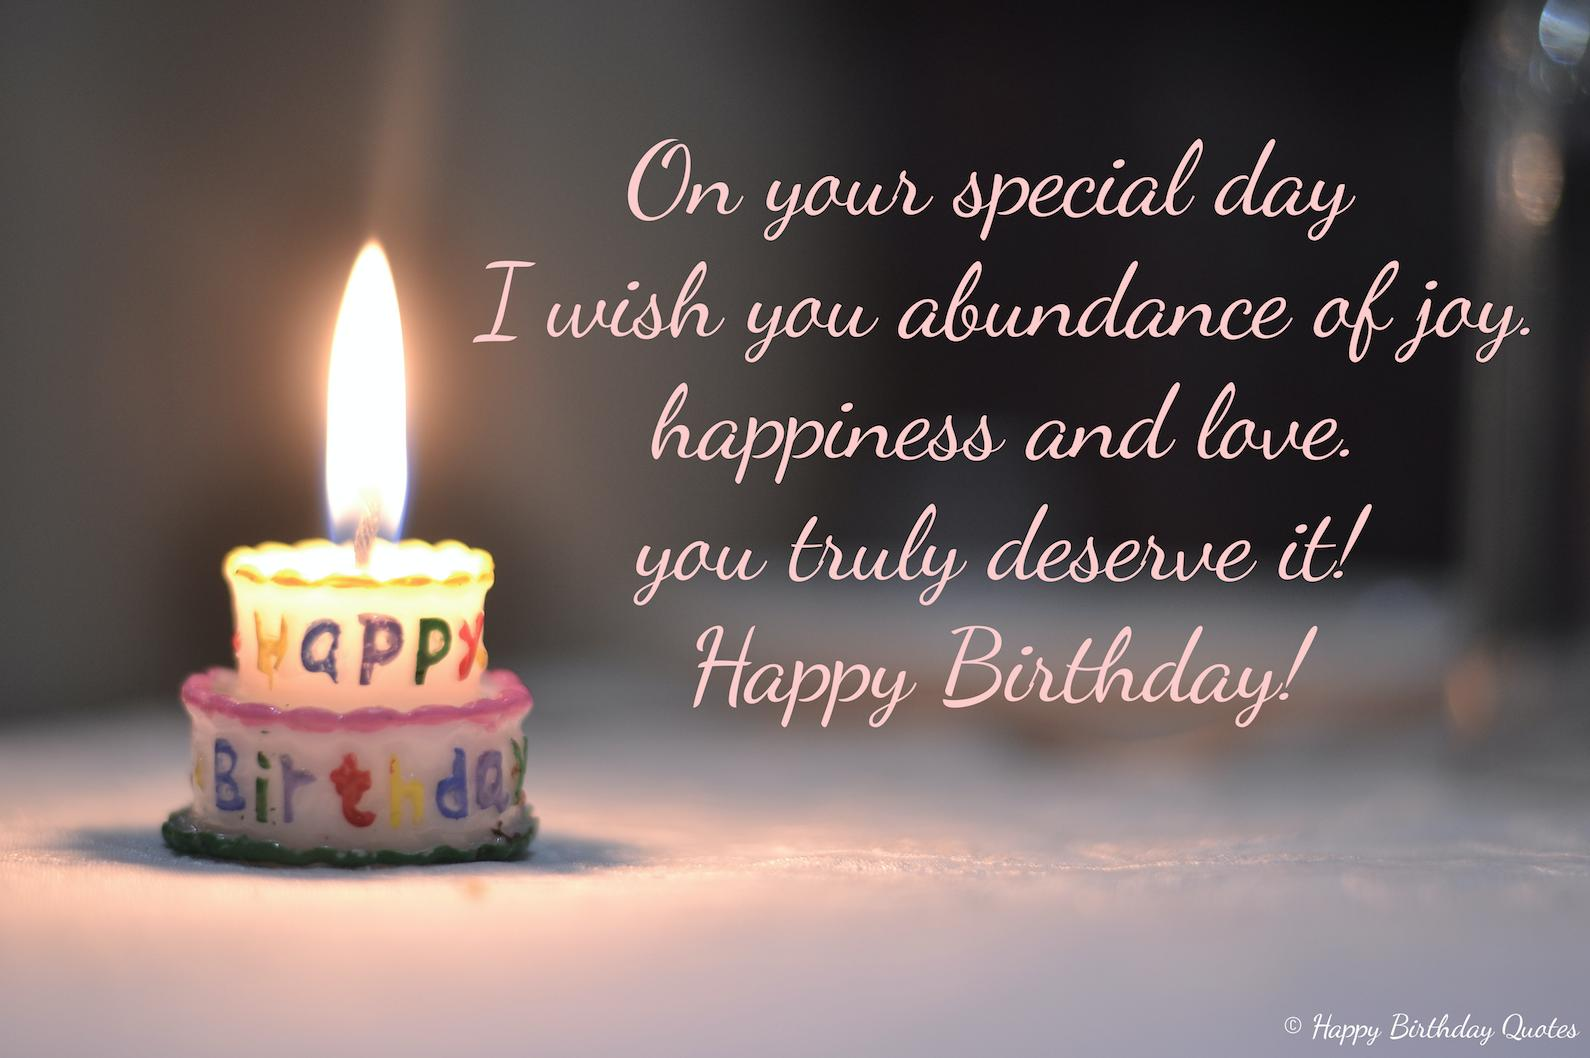 Happy Birthday Quotes for Android - APK Download